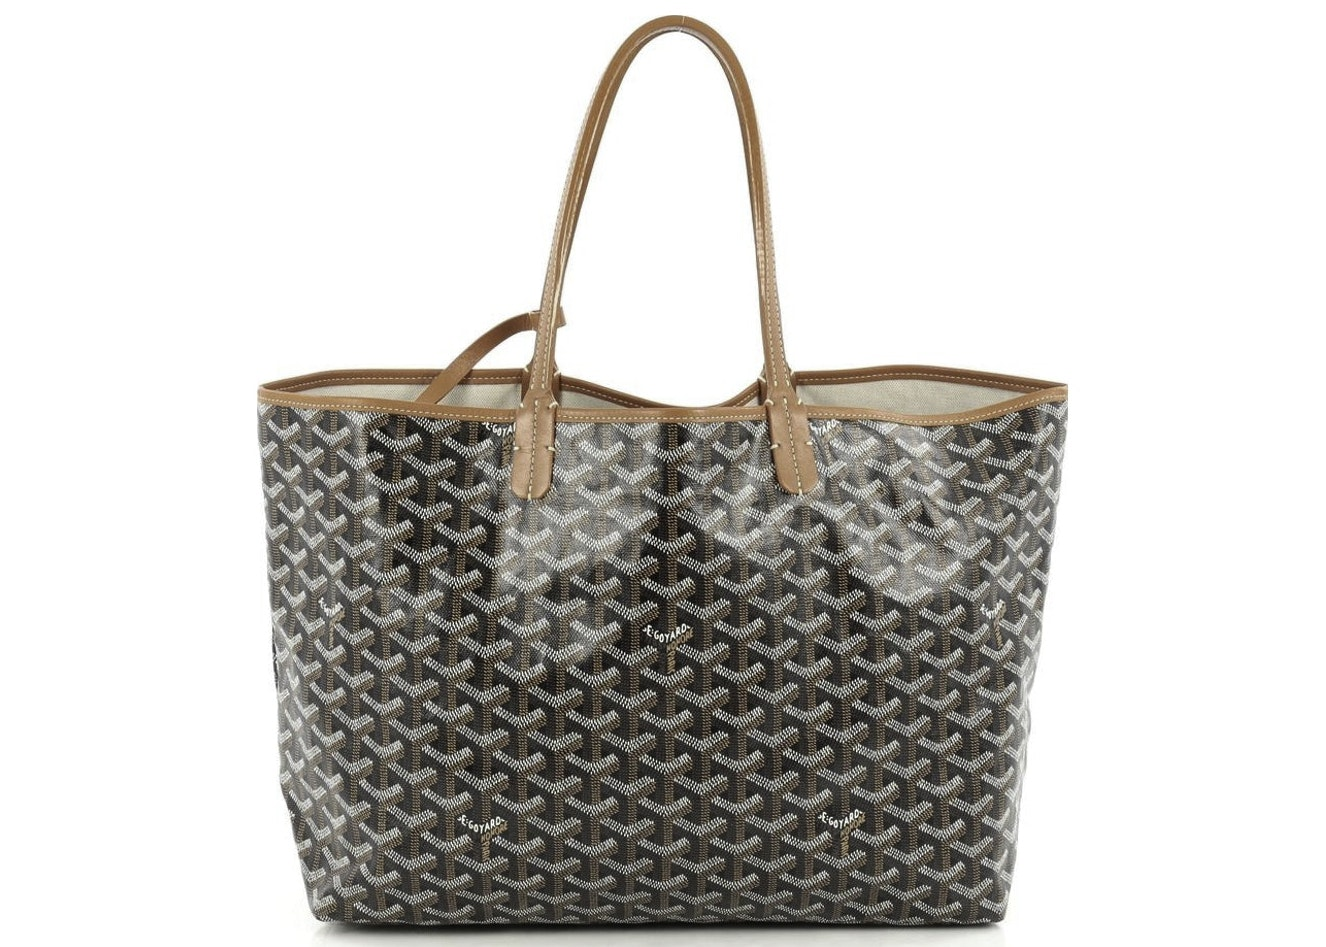 Goyard Saint Louis Tote Monogram Chevron Multicolor PM Brown